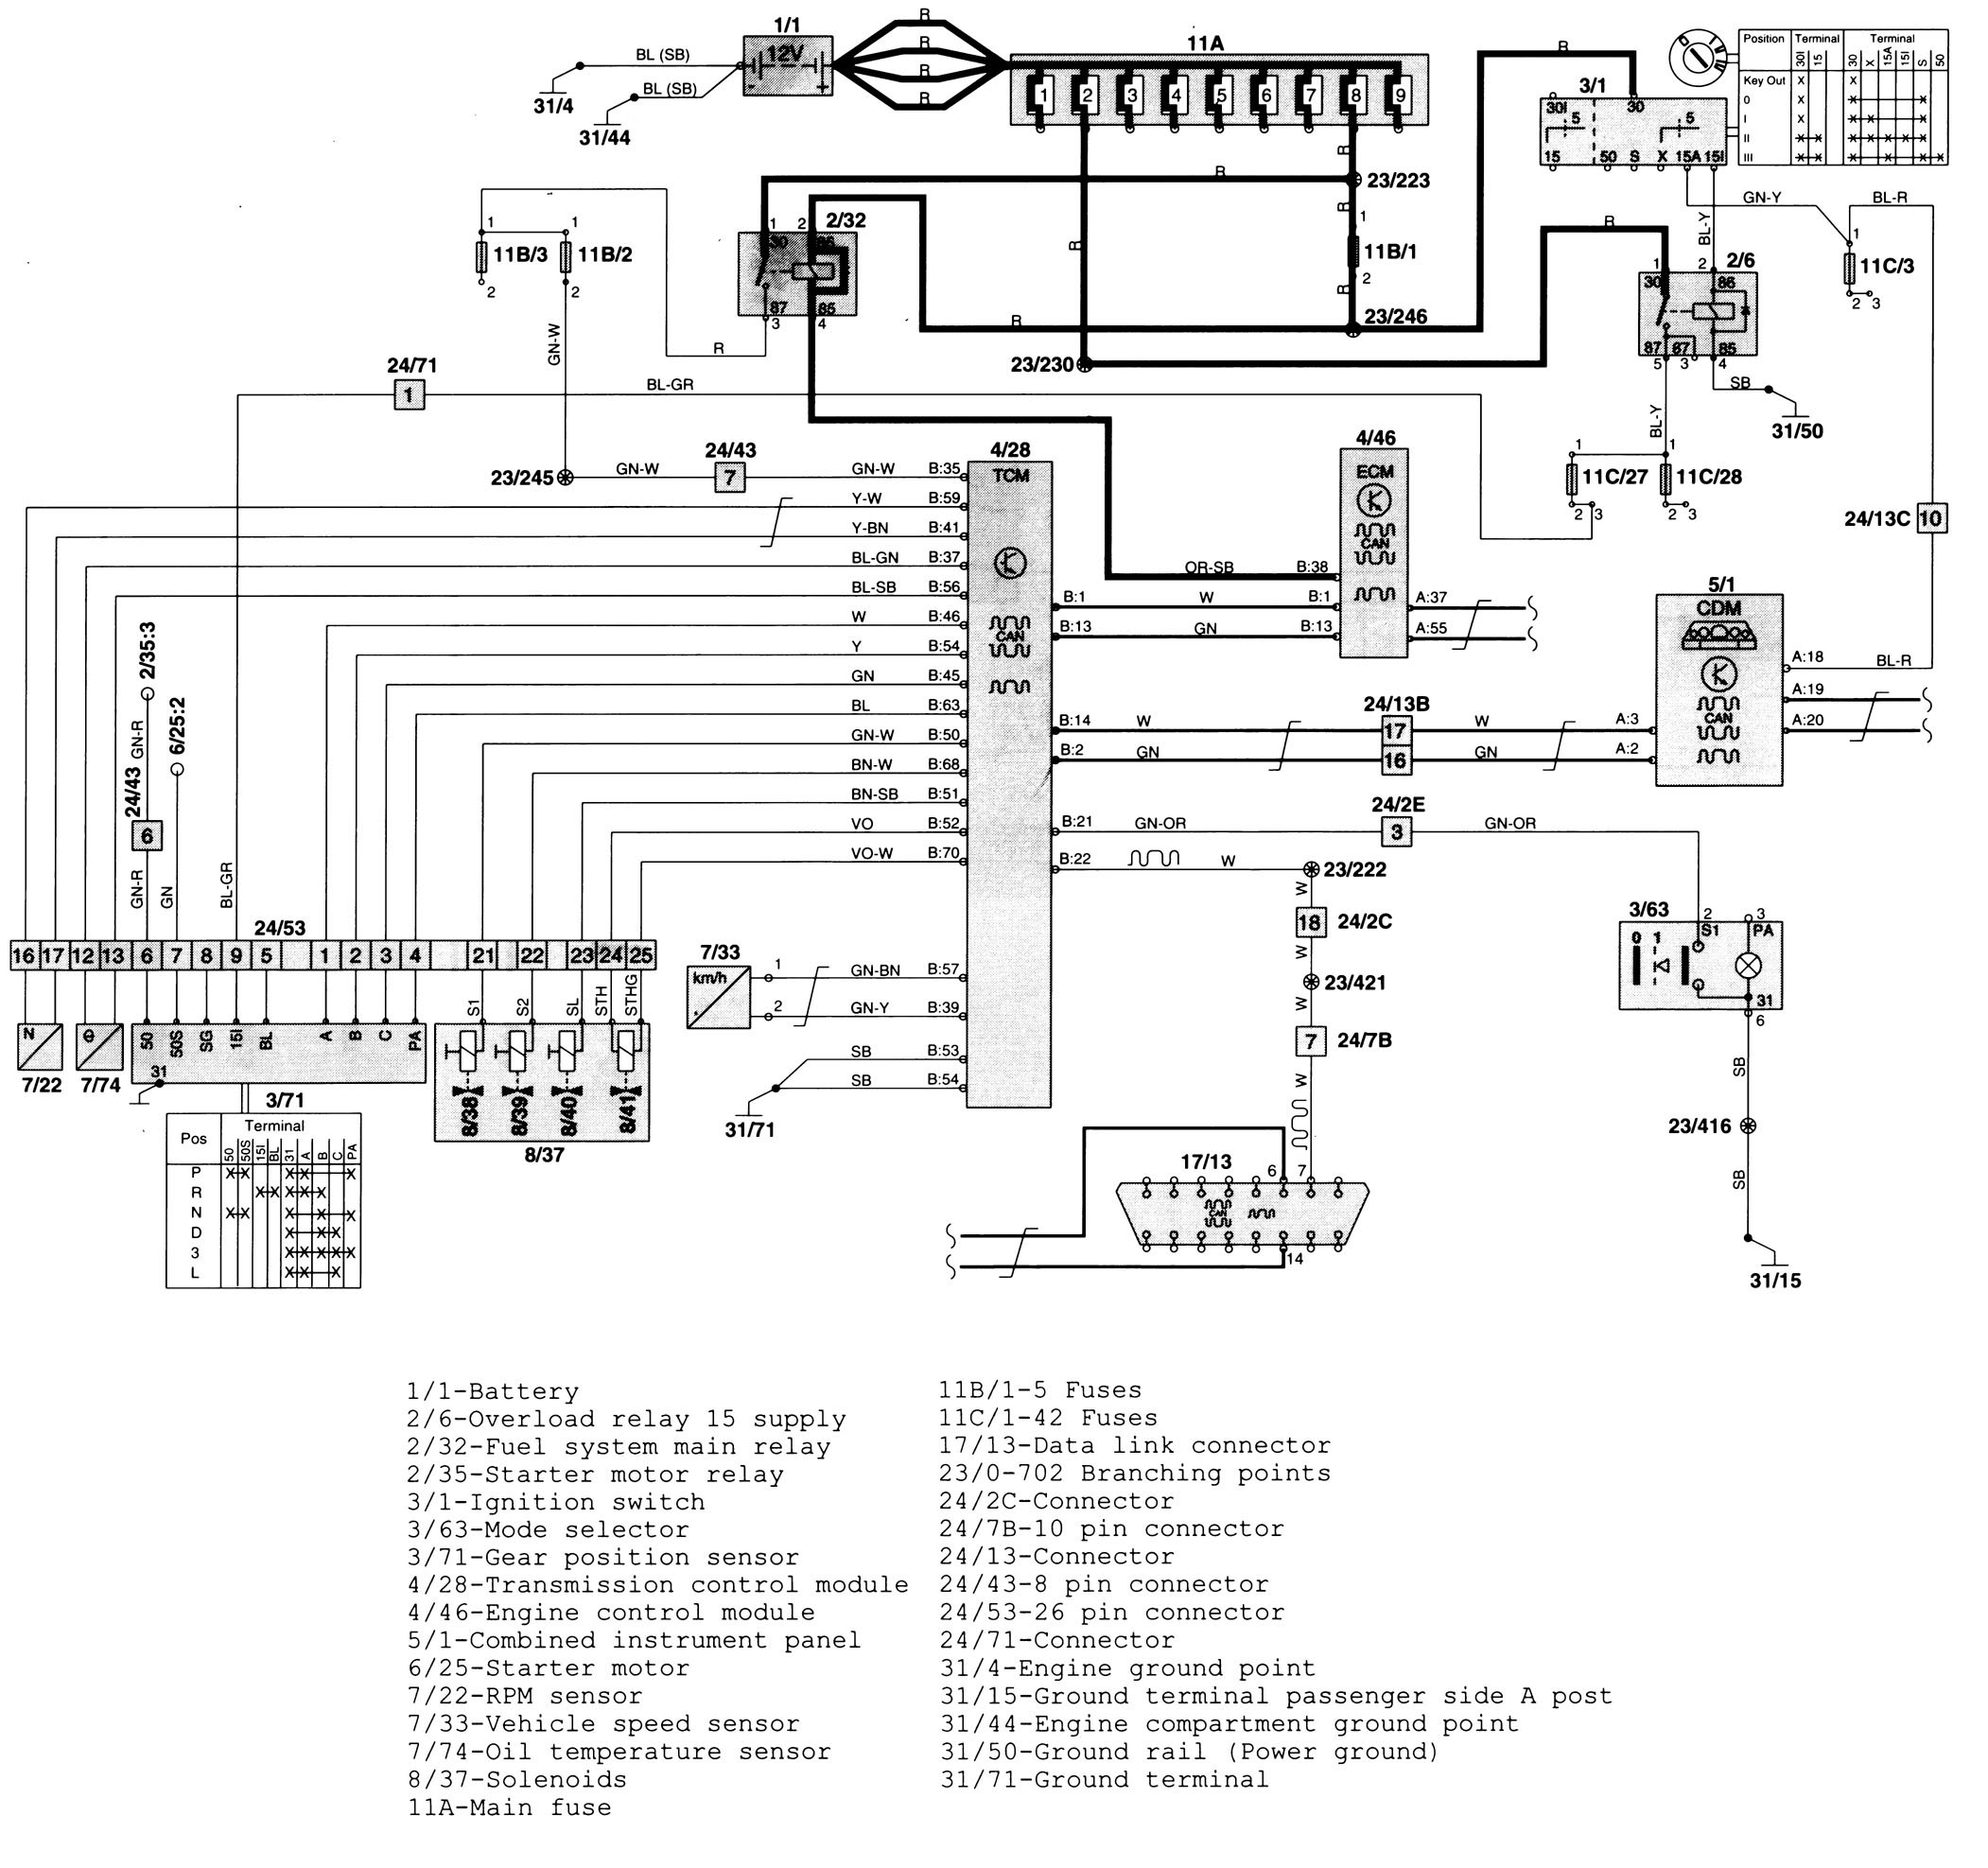 2006 Chevy Trailblazer Fuse Box Diagram Wiring Library For A 08